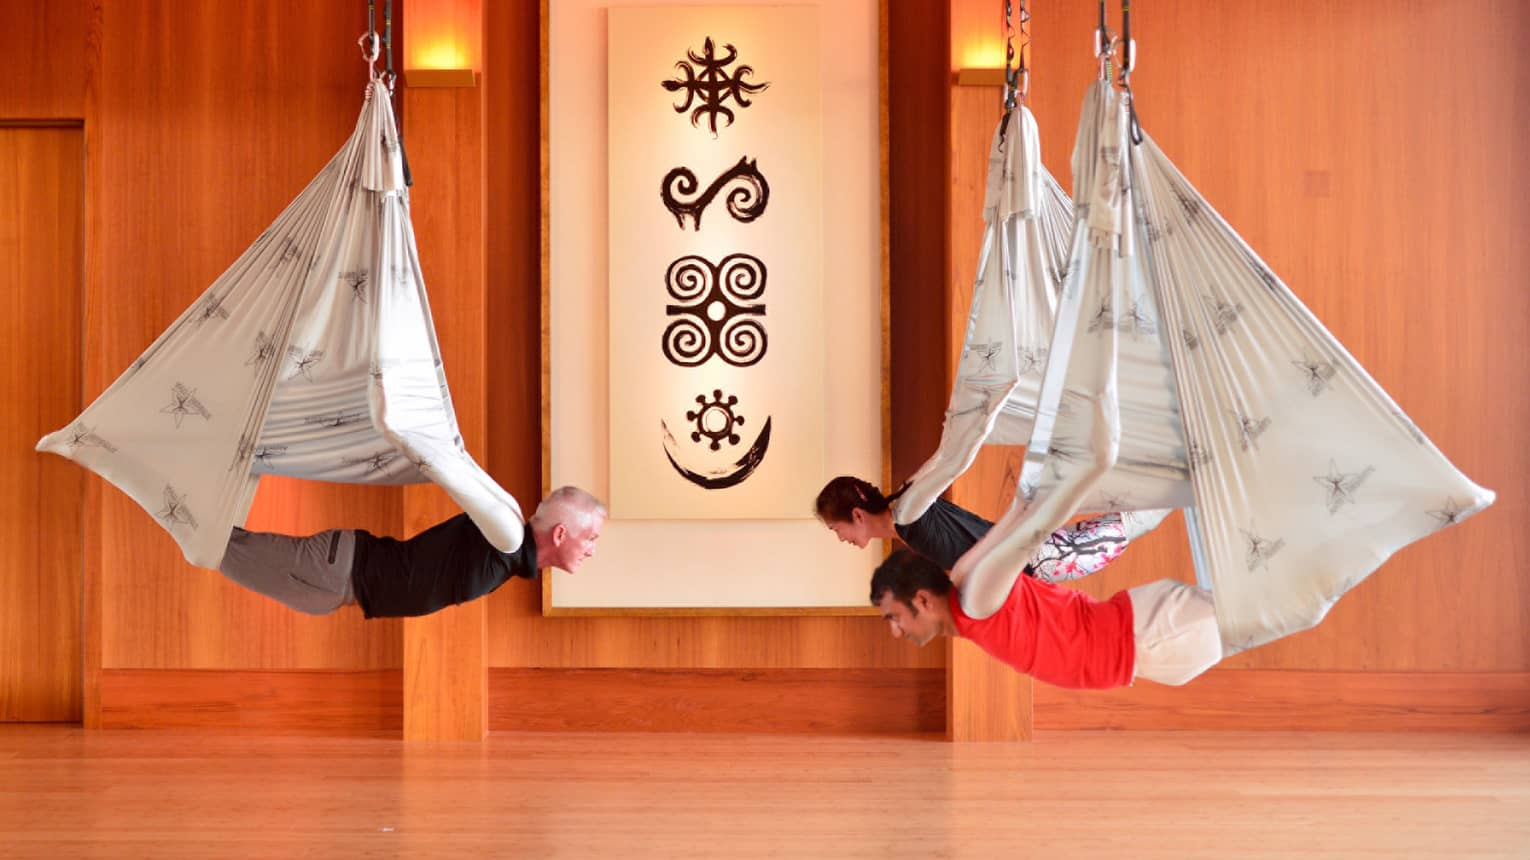 Men, woman hang from silk hammocks during anti-gravity yoga session